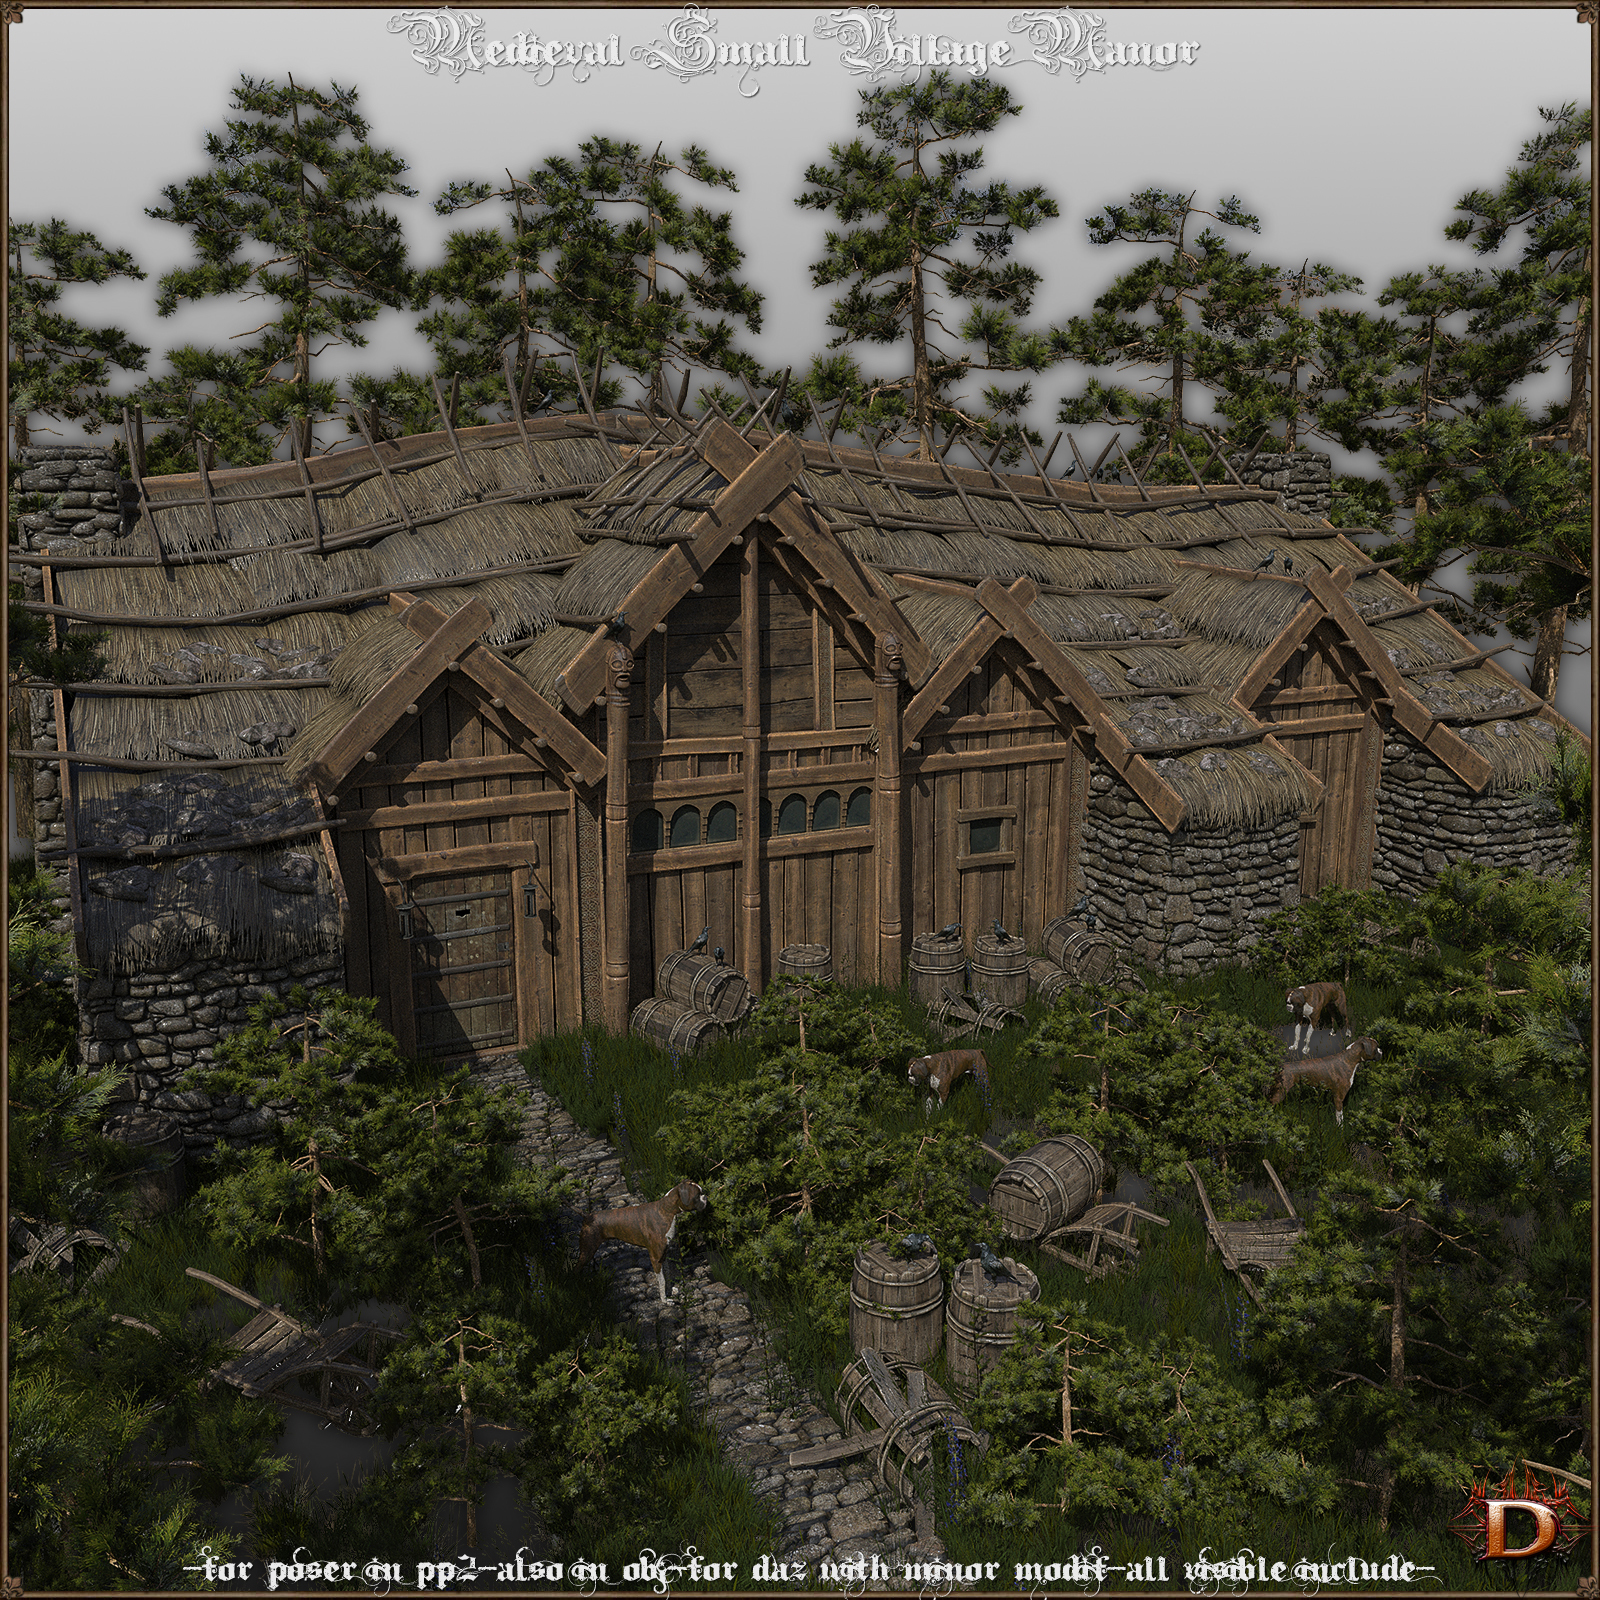 Medieval Small Village Manor by Dante78